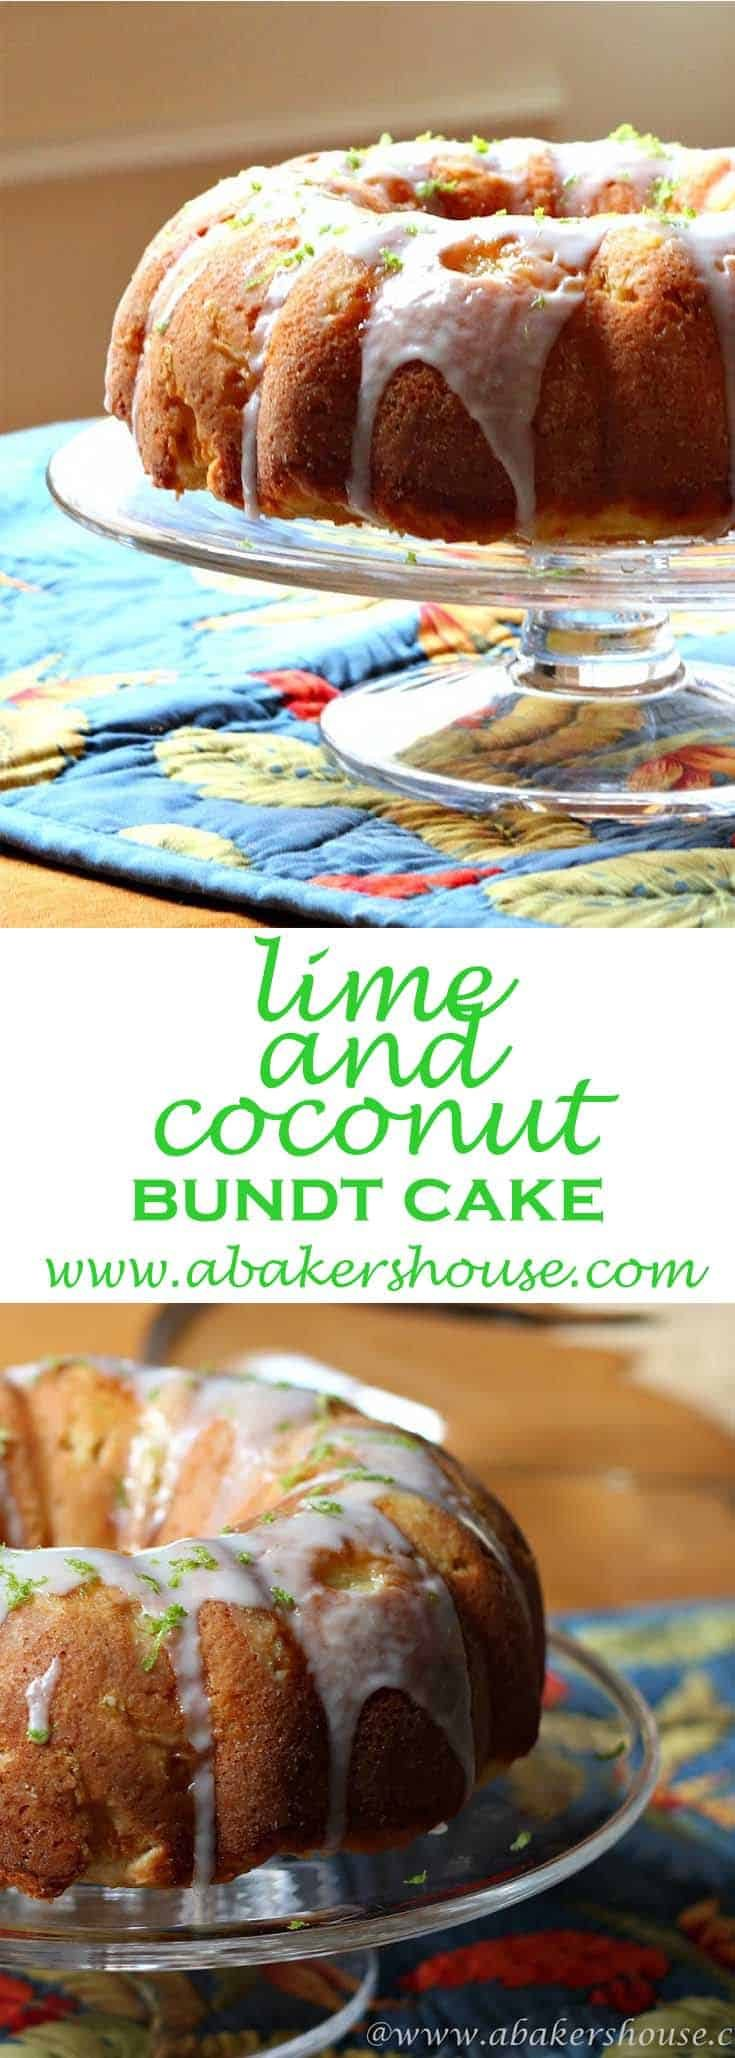 """Lime and coconut along with pineapple make this a special tropical flavored cake. I found the original recipe for Pineapple and Toasted Coconut Cake in Lauren Chattman's book, Cake Keeper Cakes, and I adapted it slightly to include lime. I couldn't get that """"Coconut"""" song out of my head—Put the Lime in the Coconut and mix it all together. #abakershouse #bundt #cake #lime #coconut #islandflavors"""